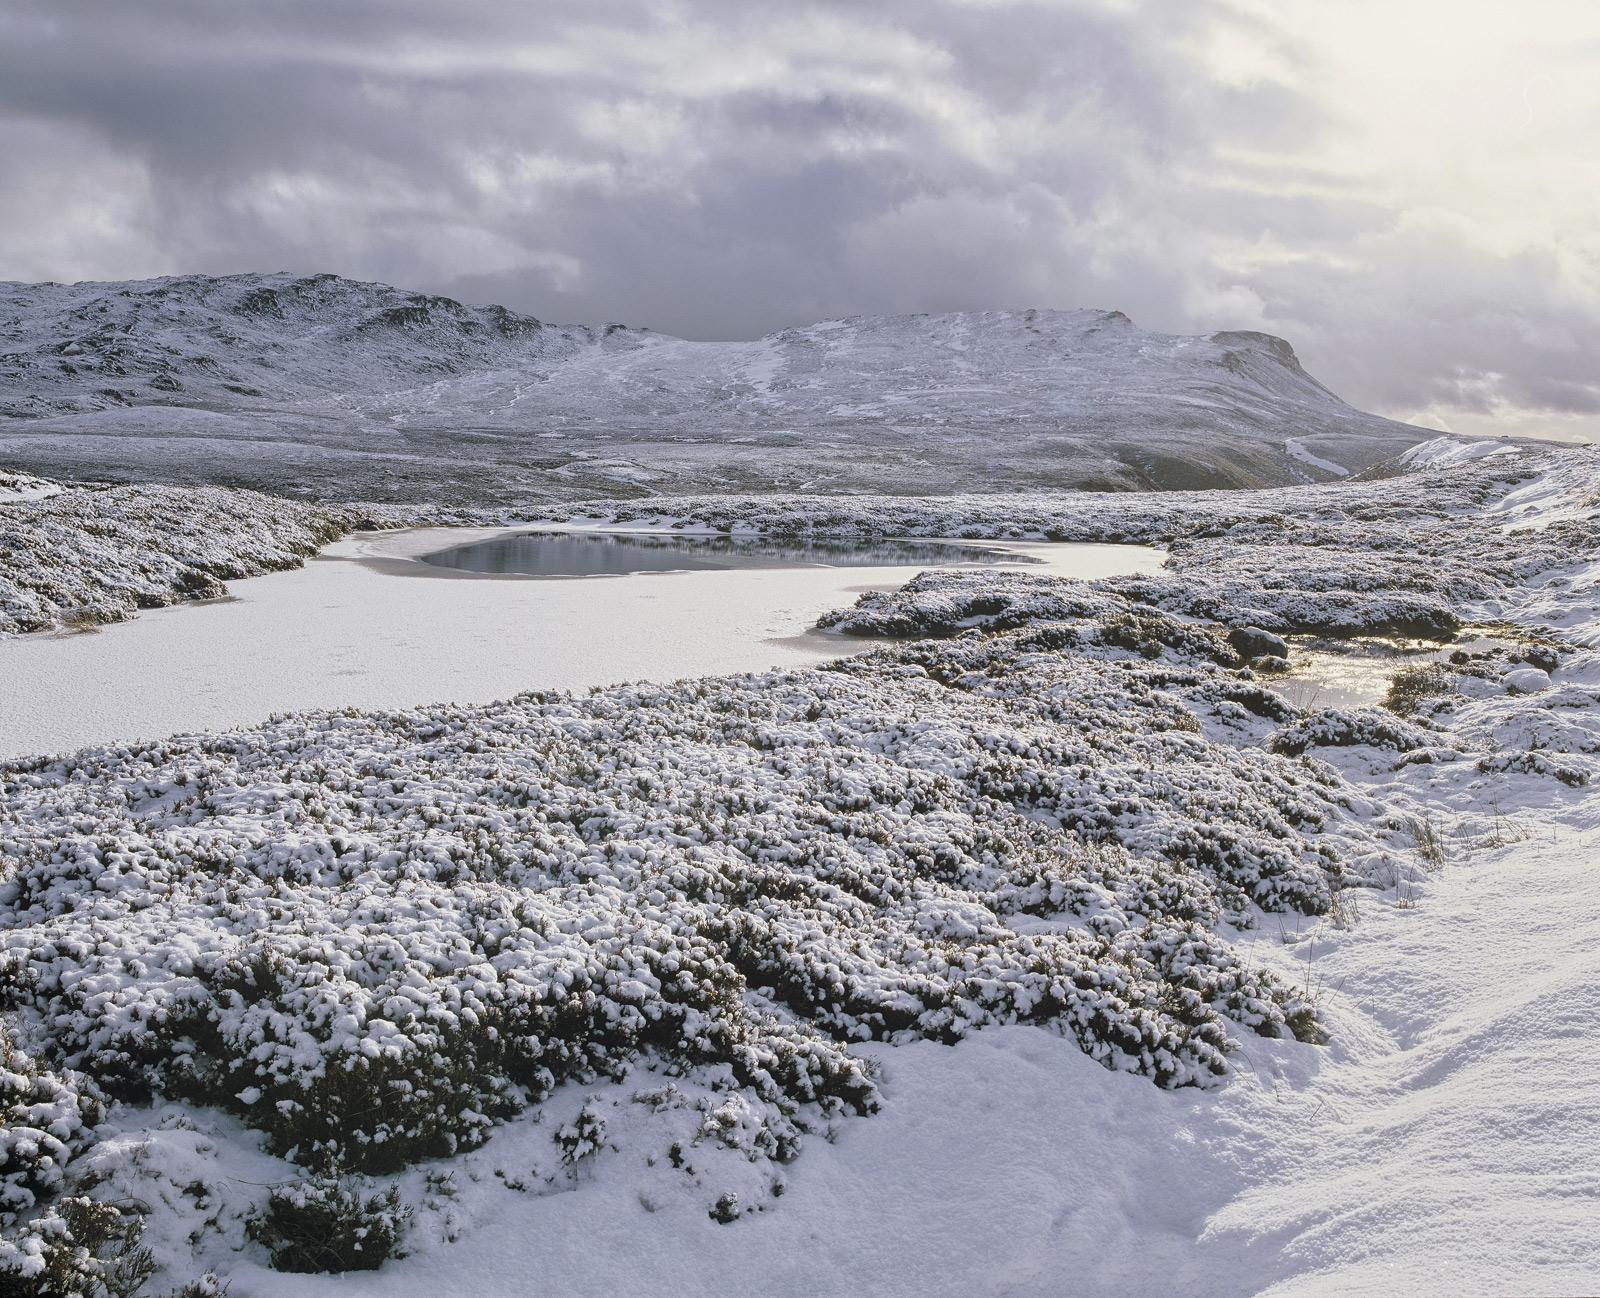 A spring blizzard laid across Moray's lung, Dava moor, an open expanse of moorland that strides out towards the Cairngorms.&nbsp...